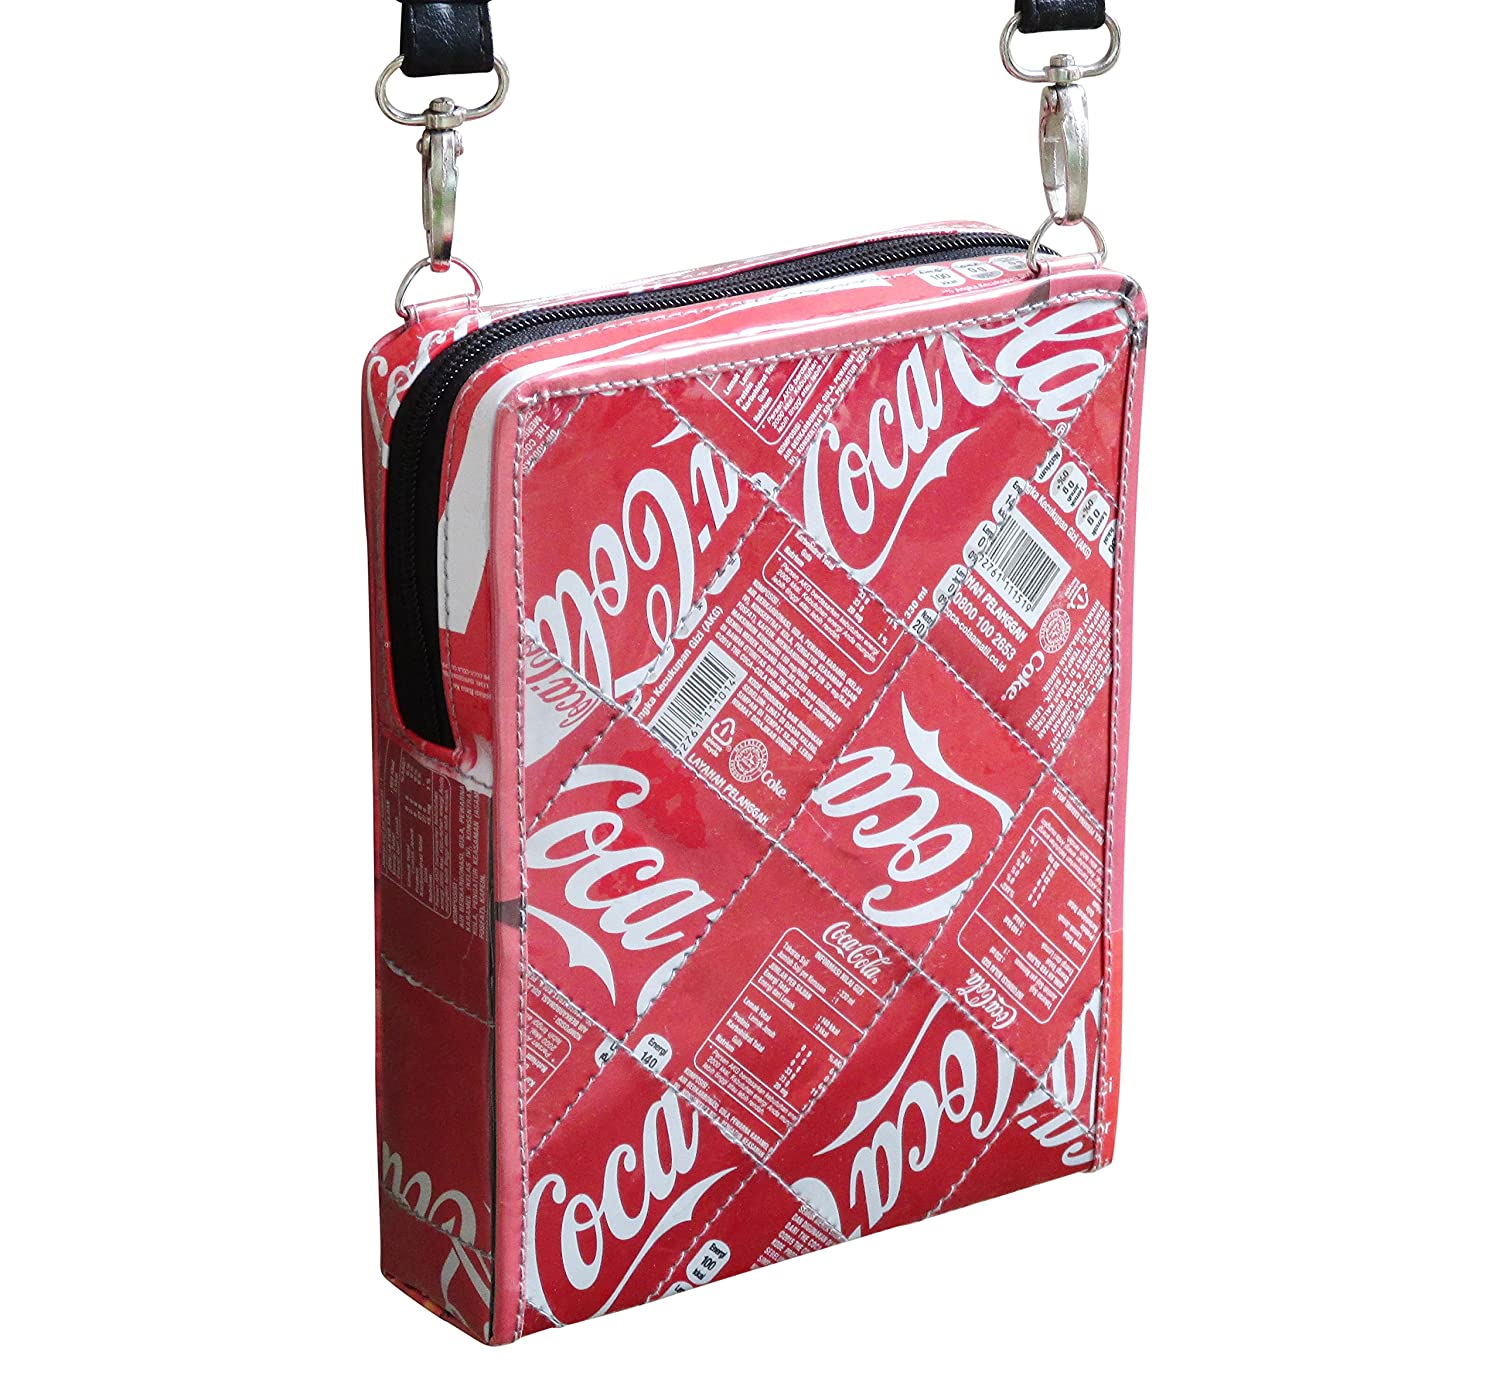 Small crossbody made of Coca Cola can - FREE SHIPPING, upcycled eco friendly vegan style recycled made from reclaimed repurposed materials handmade bag gift gifts upcycling recycling coke material